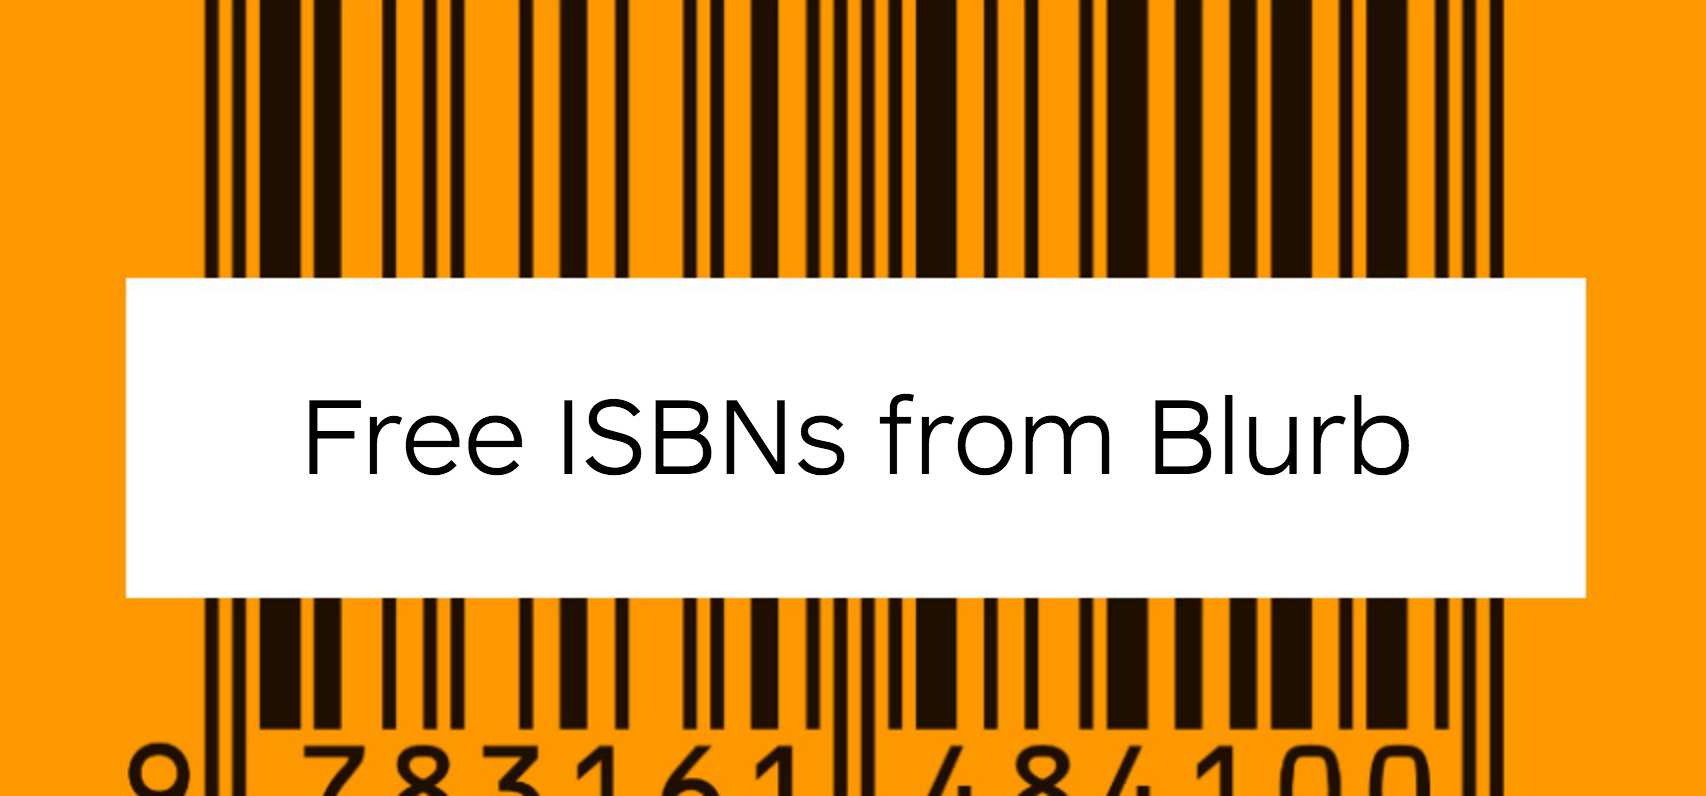 free isbns from blurb